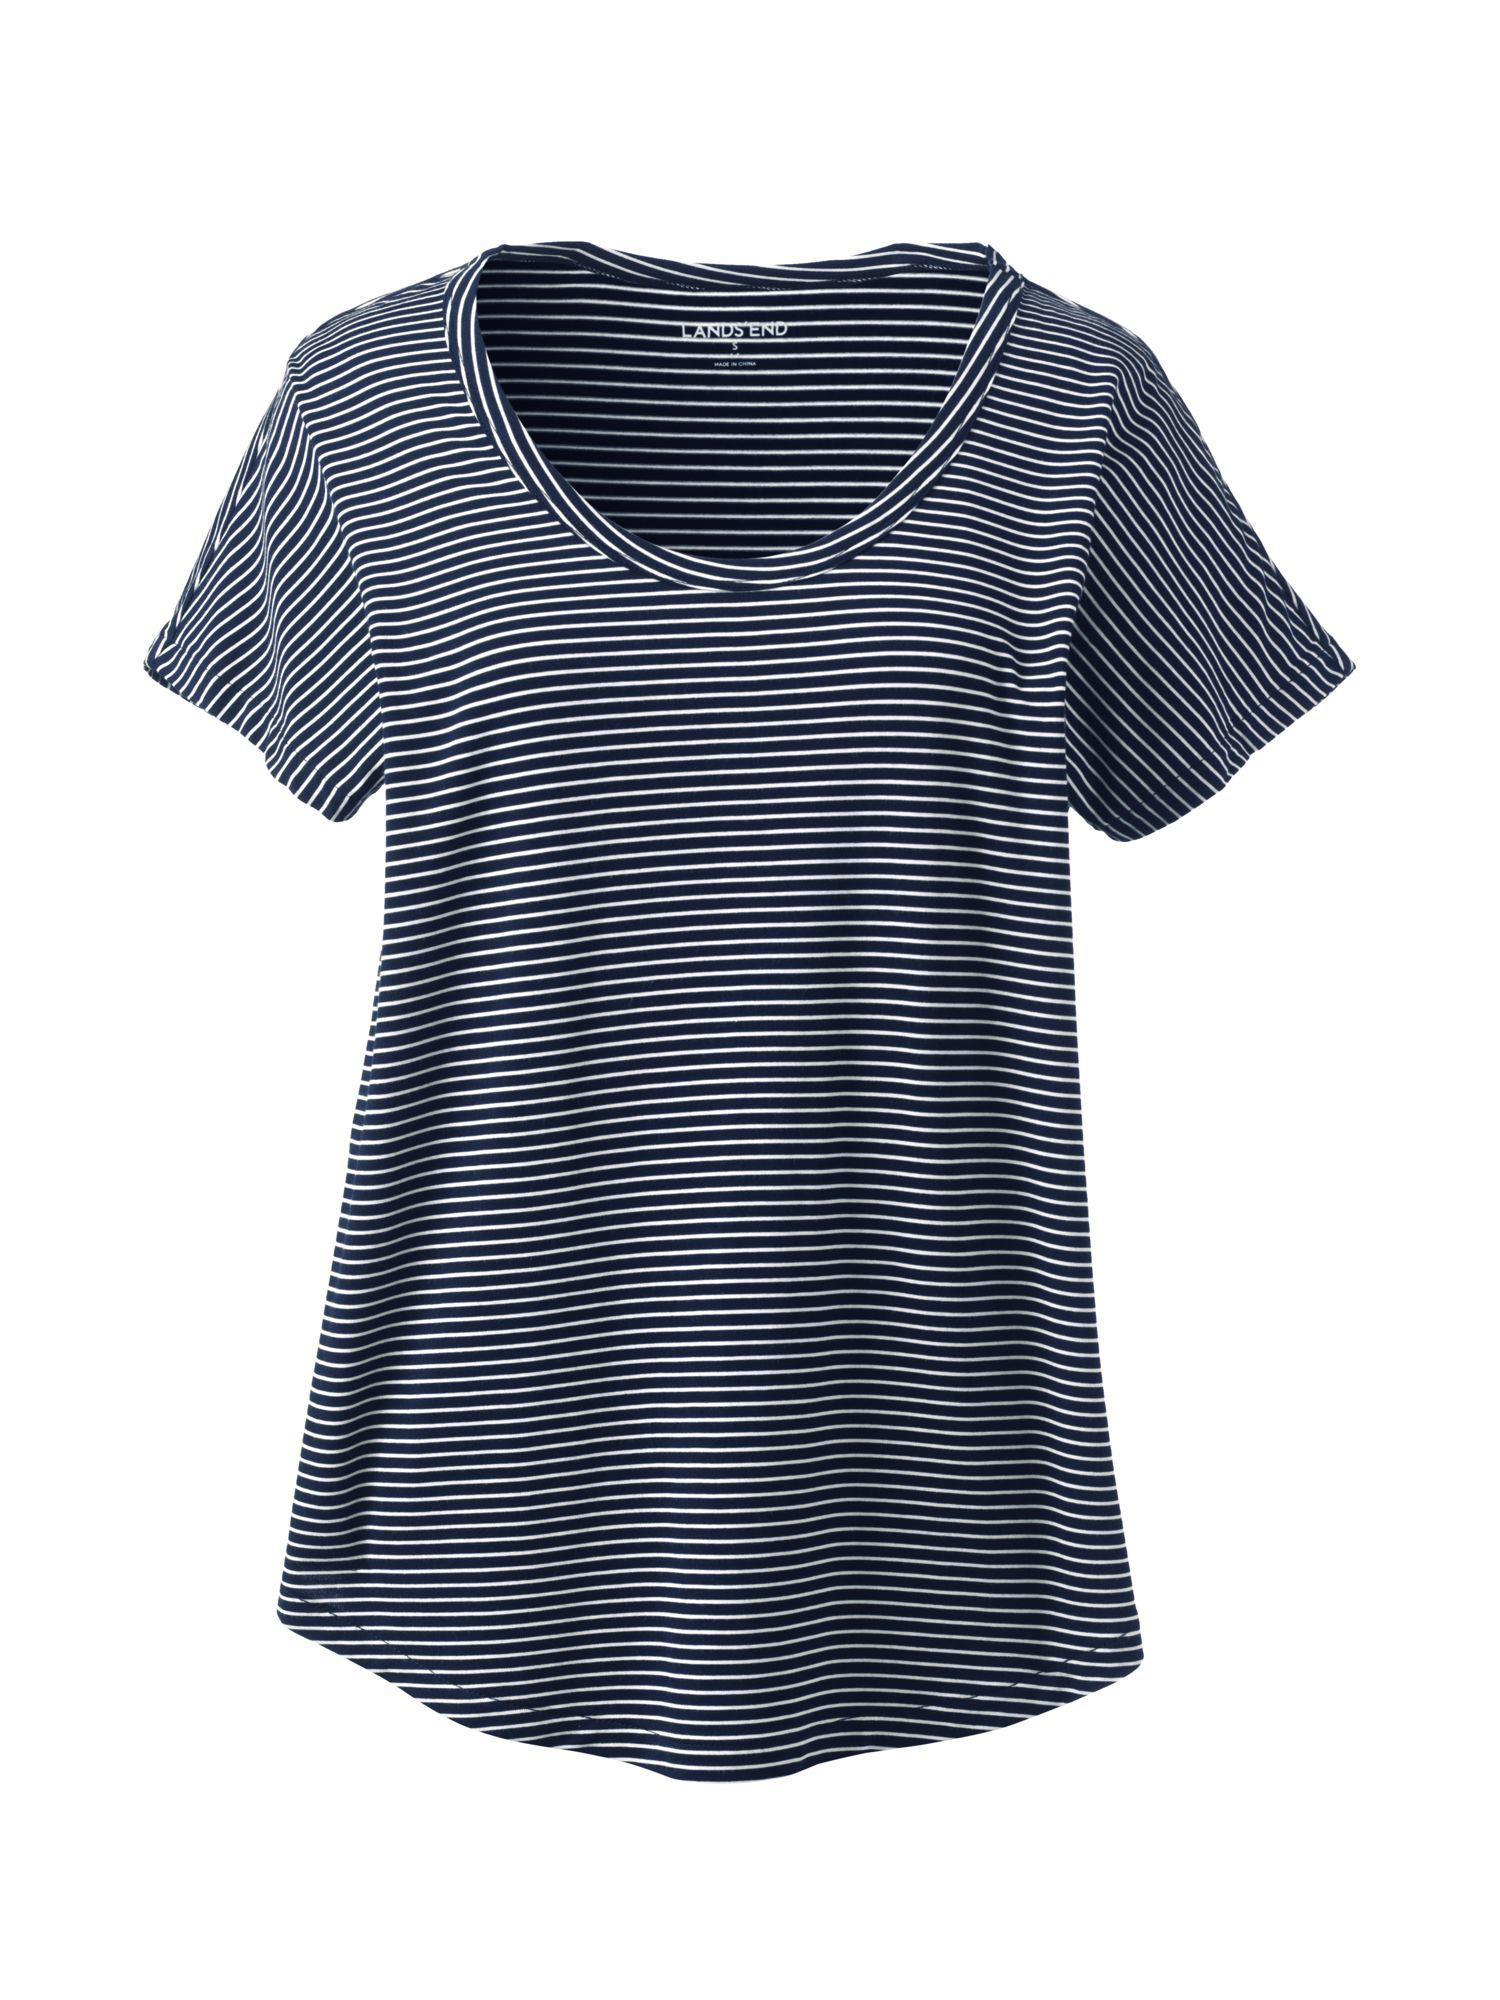 Womens Stripe T-shirt Dress with Dolman Sleeves - 10 -12 - BLUE Lands End Free Shipping Big Sale eSUWPgzxId